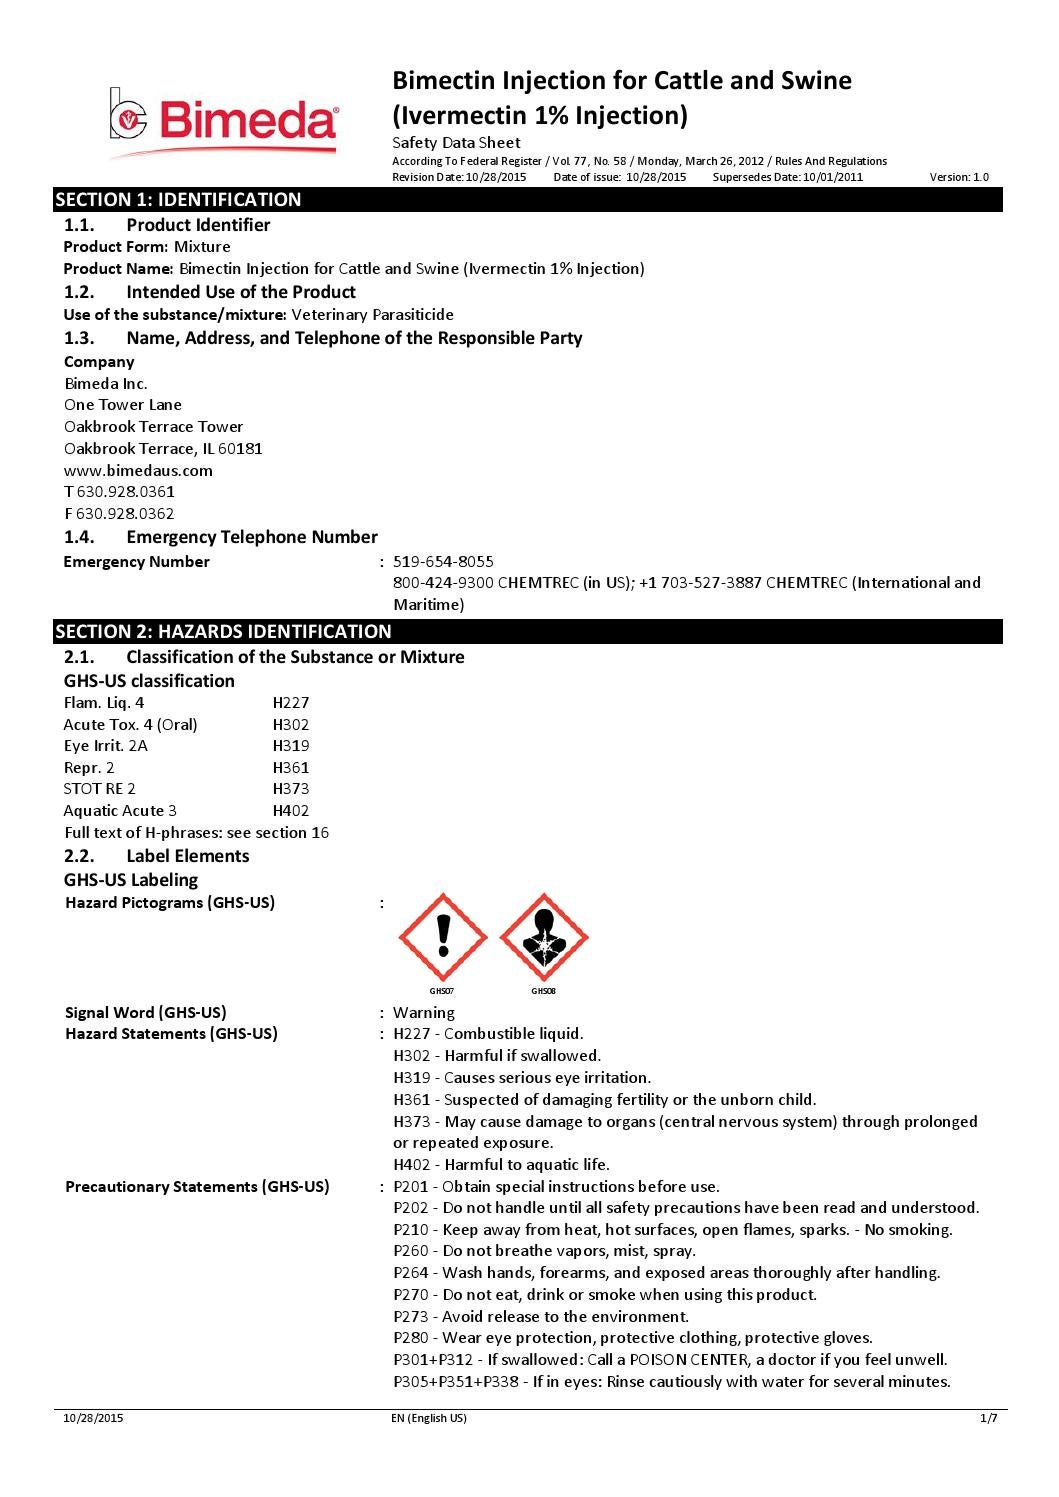 1bim017 safety sheet by cross vetpharm group ltd issuu for 1 tower lane oakbrook terrace il 60181